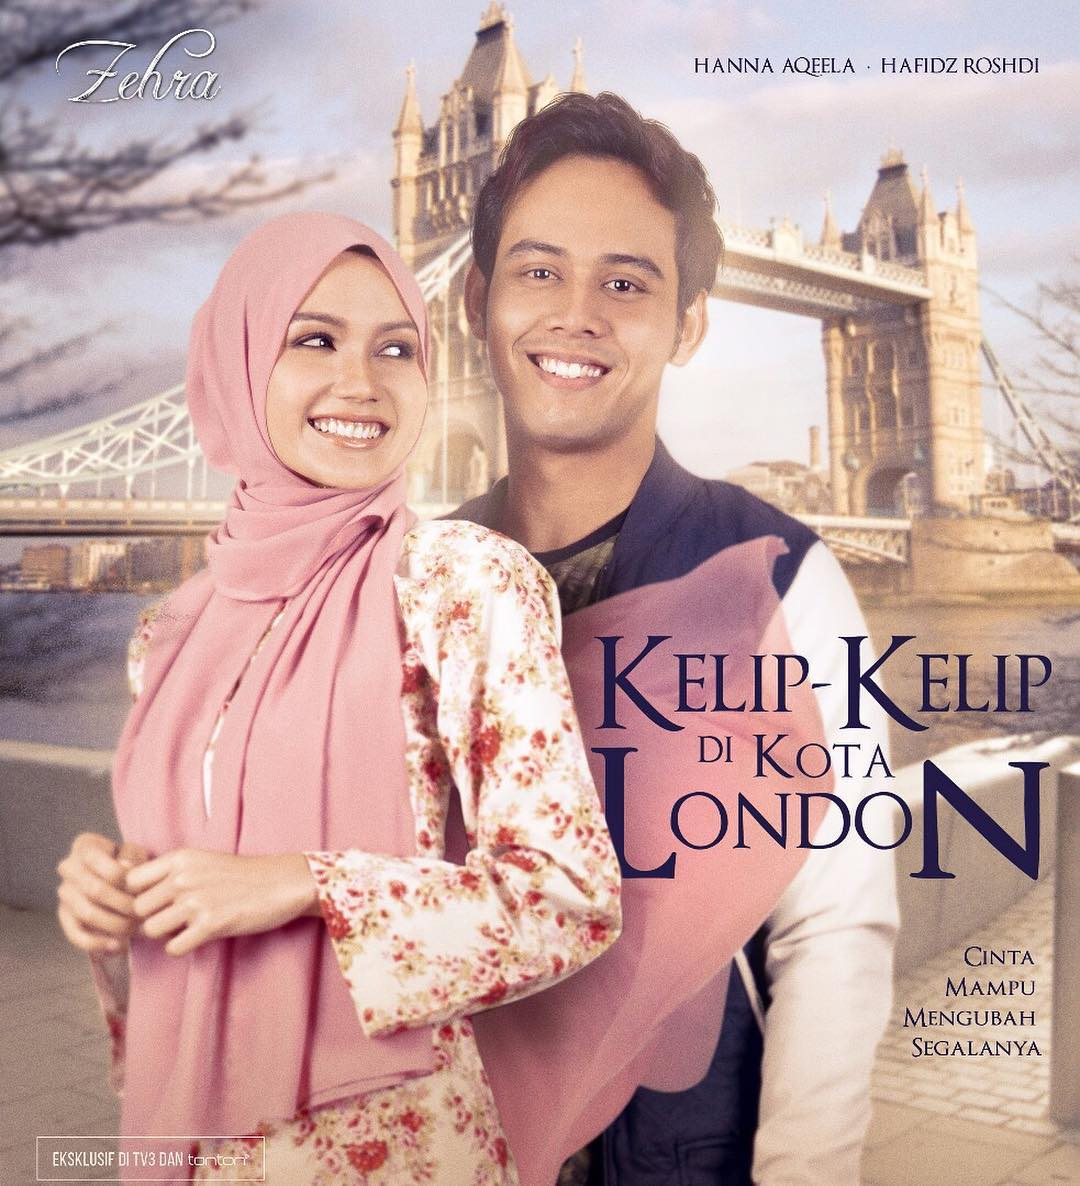 Kelip-Kelip Di Kota London